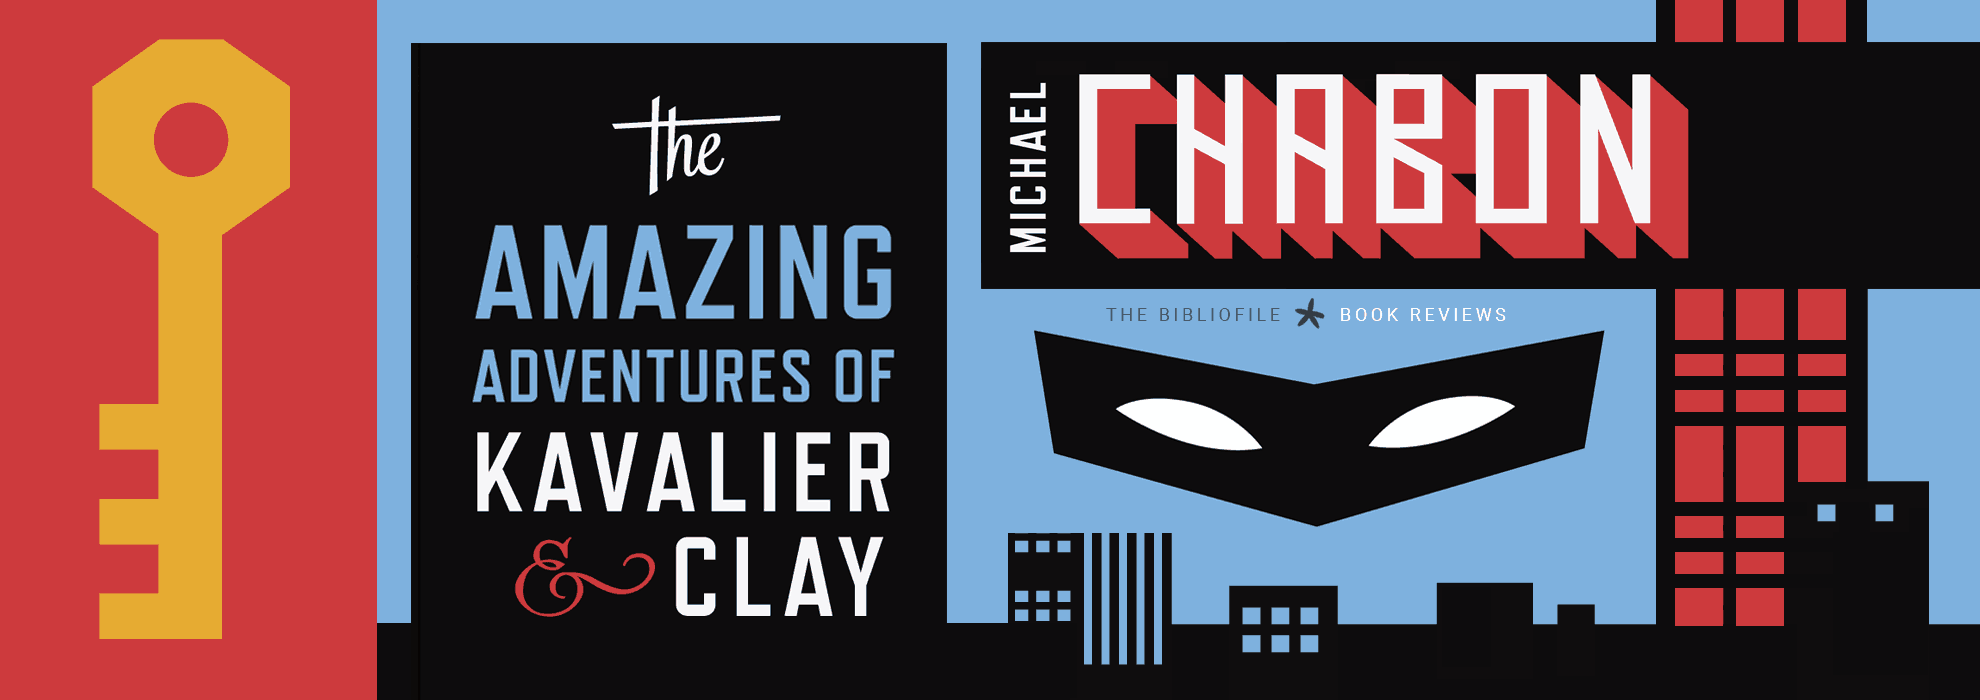 adventures of kavalier and clay by michael chabon